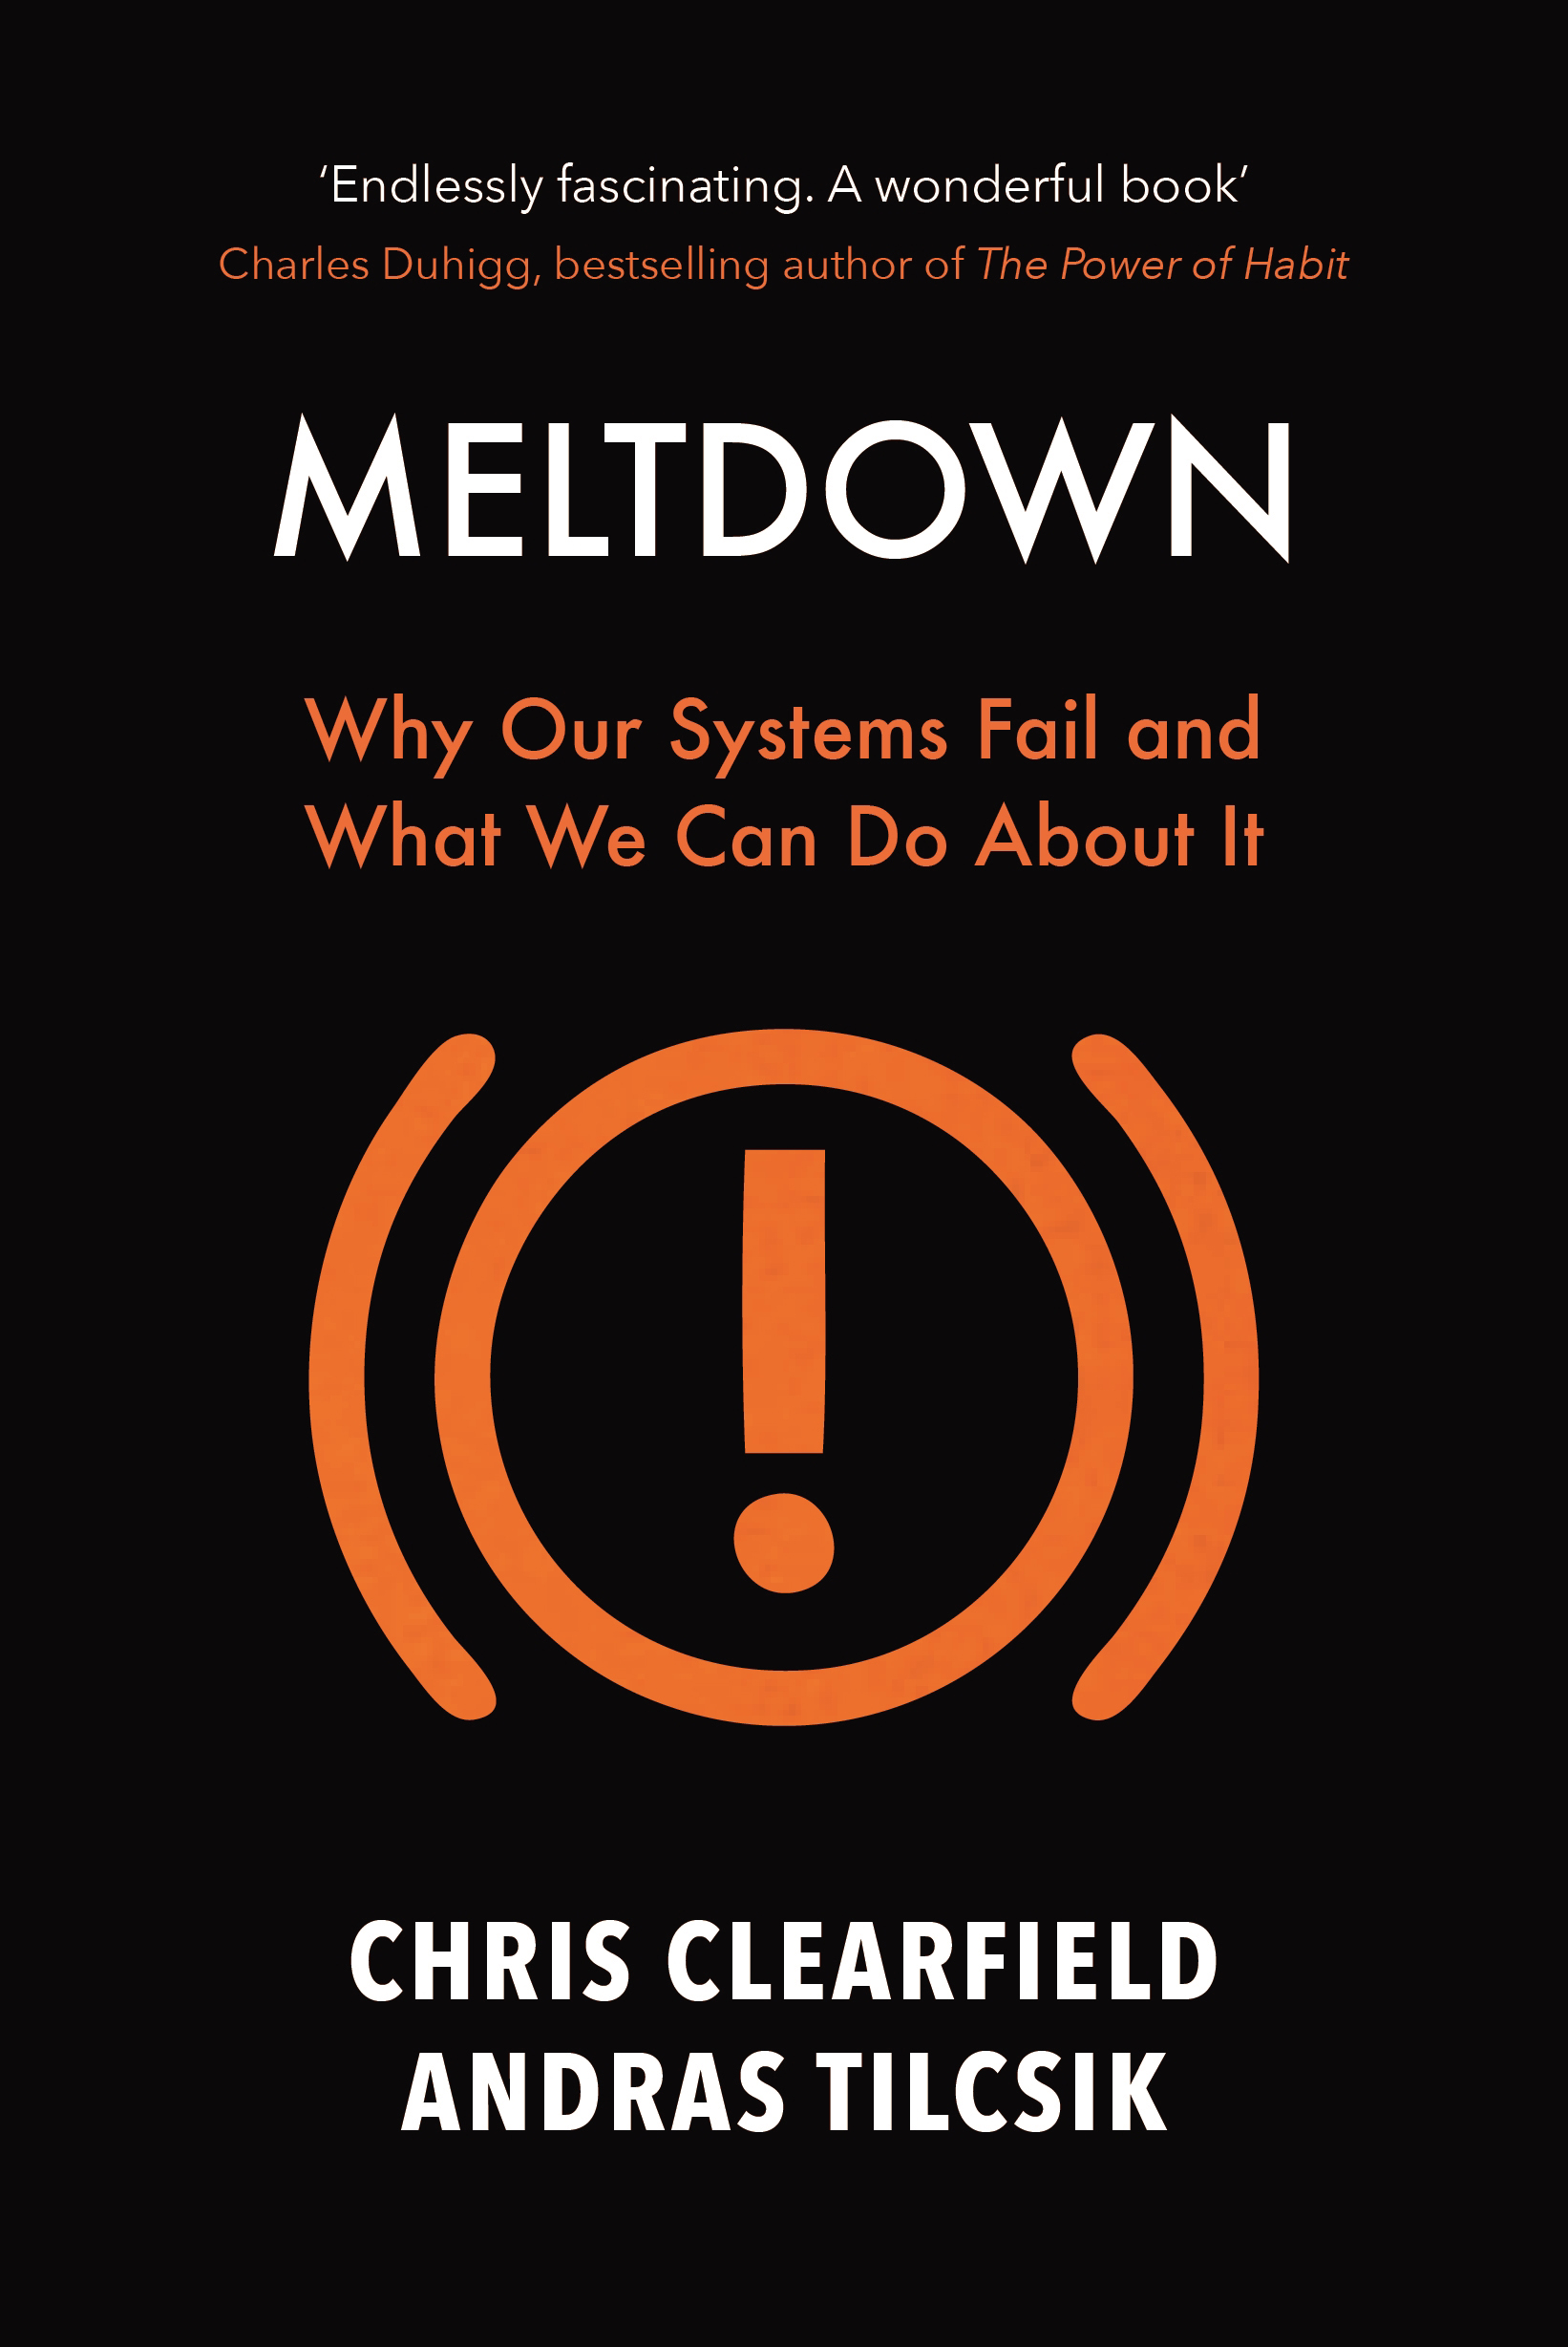 Meltdown Chris Clearfield And Andras Tilcsik